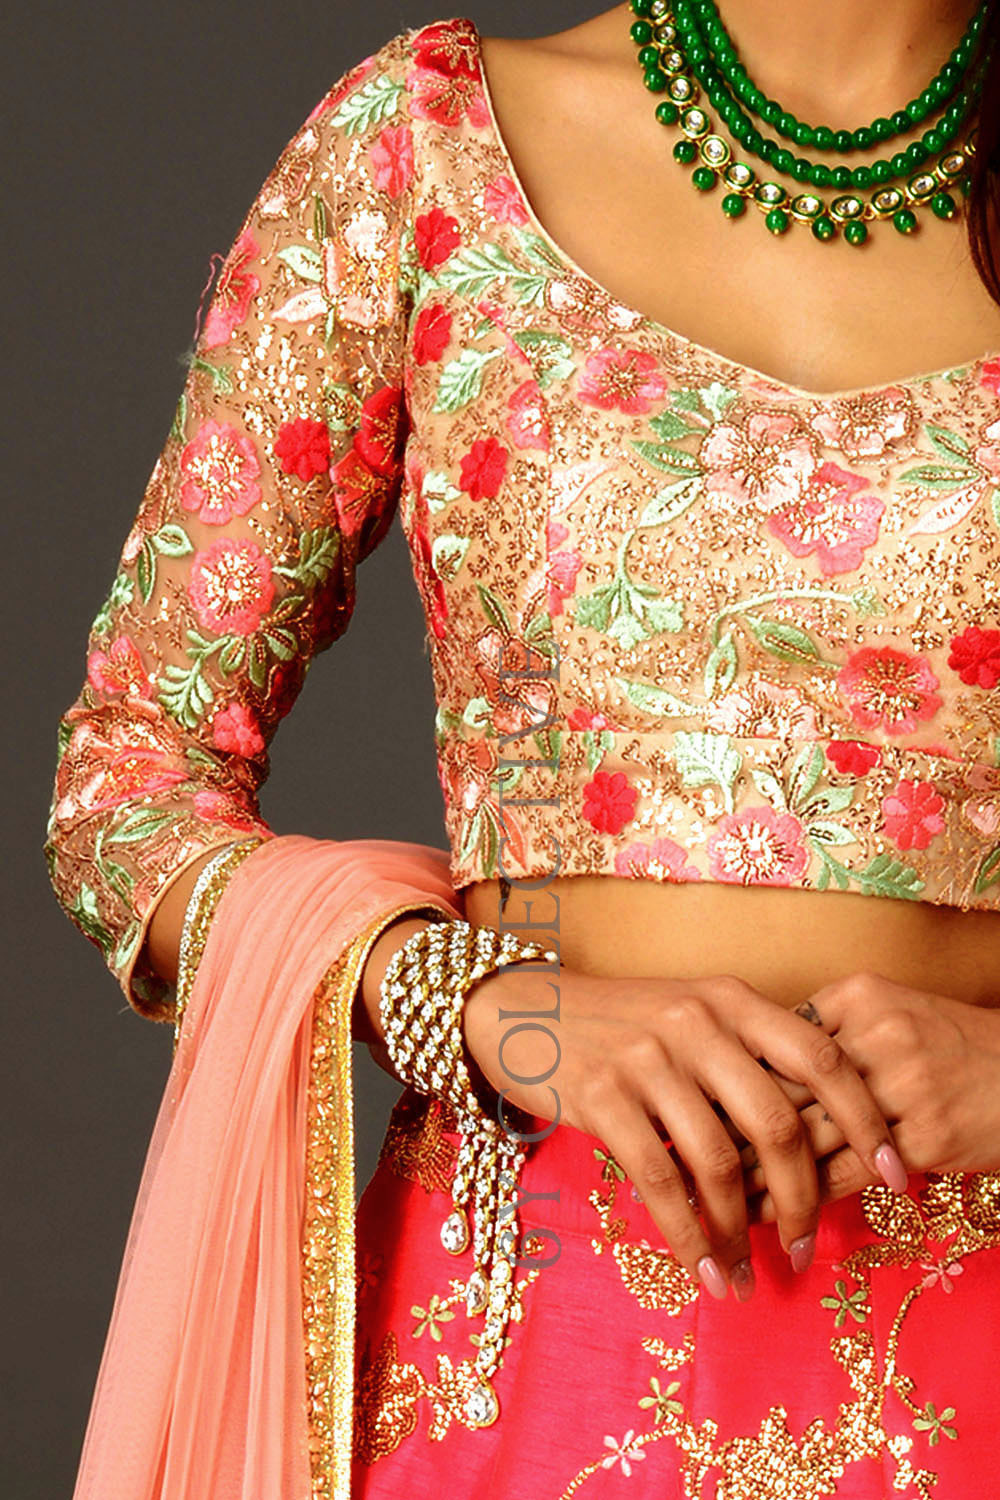 Hot Pink Sequins 6YCollective Lehenga